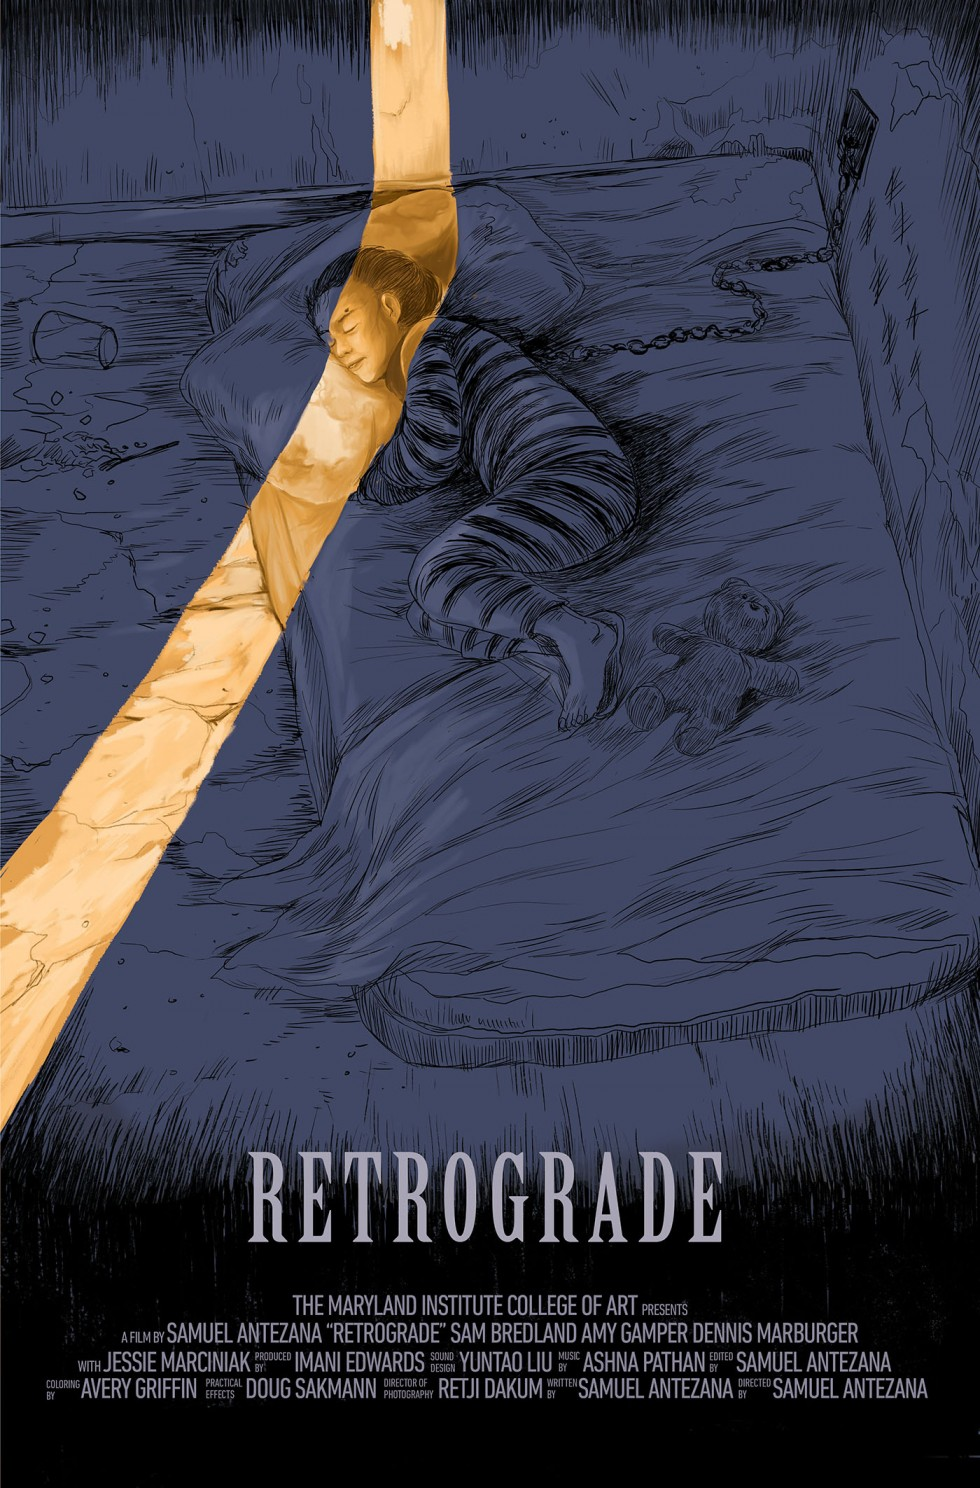 RETROGRADE Poster. Illustration by Dani Go.